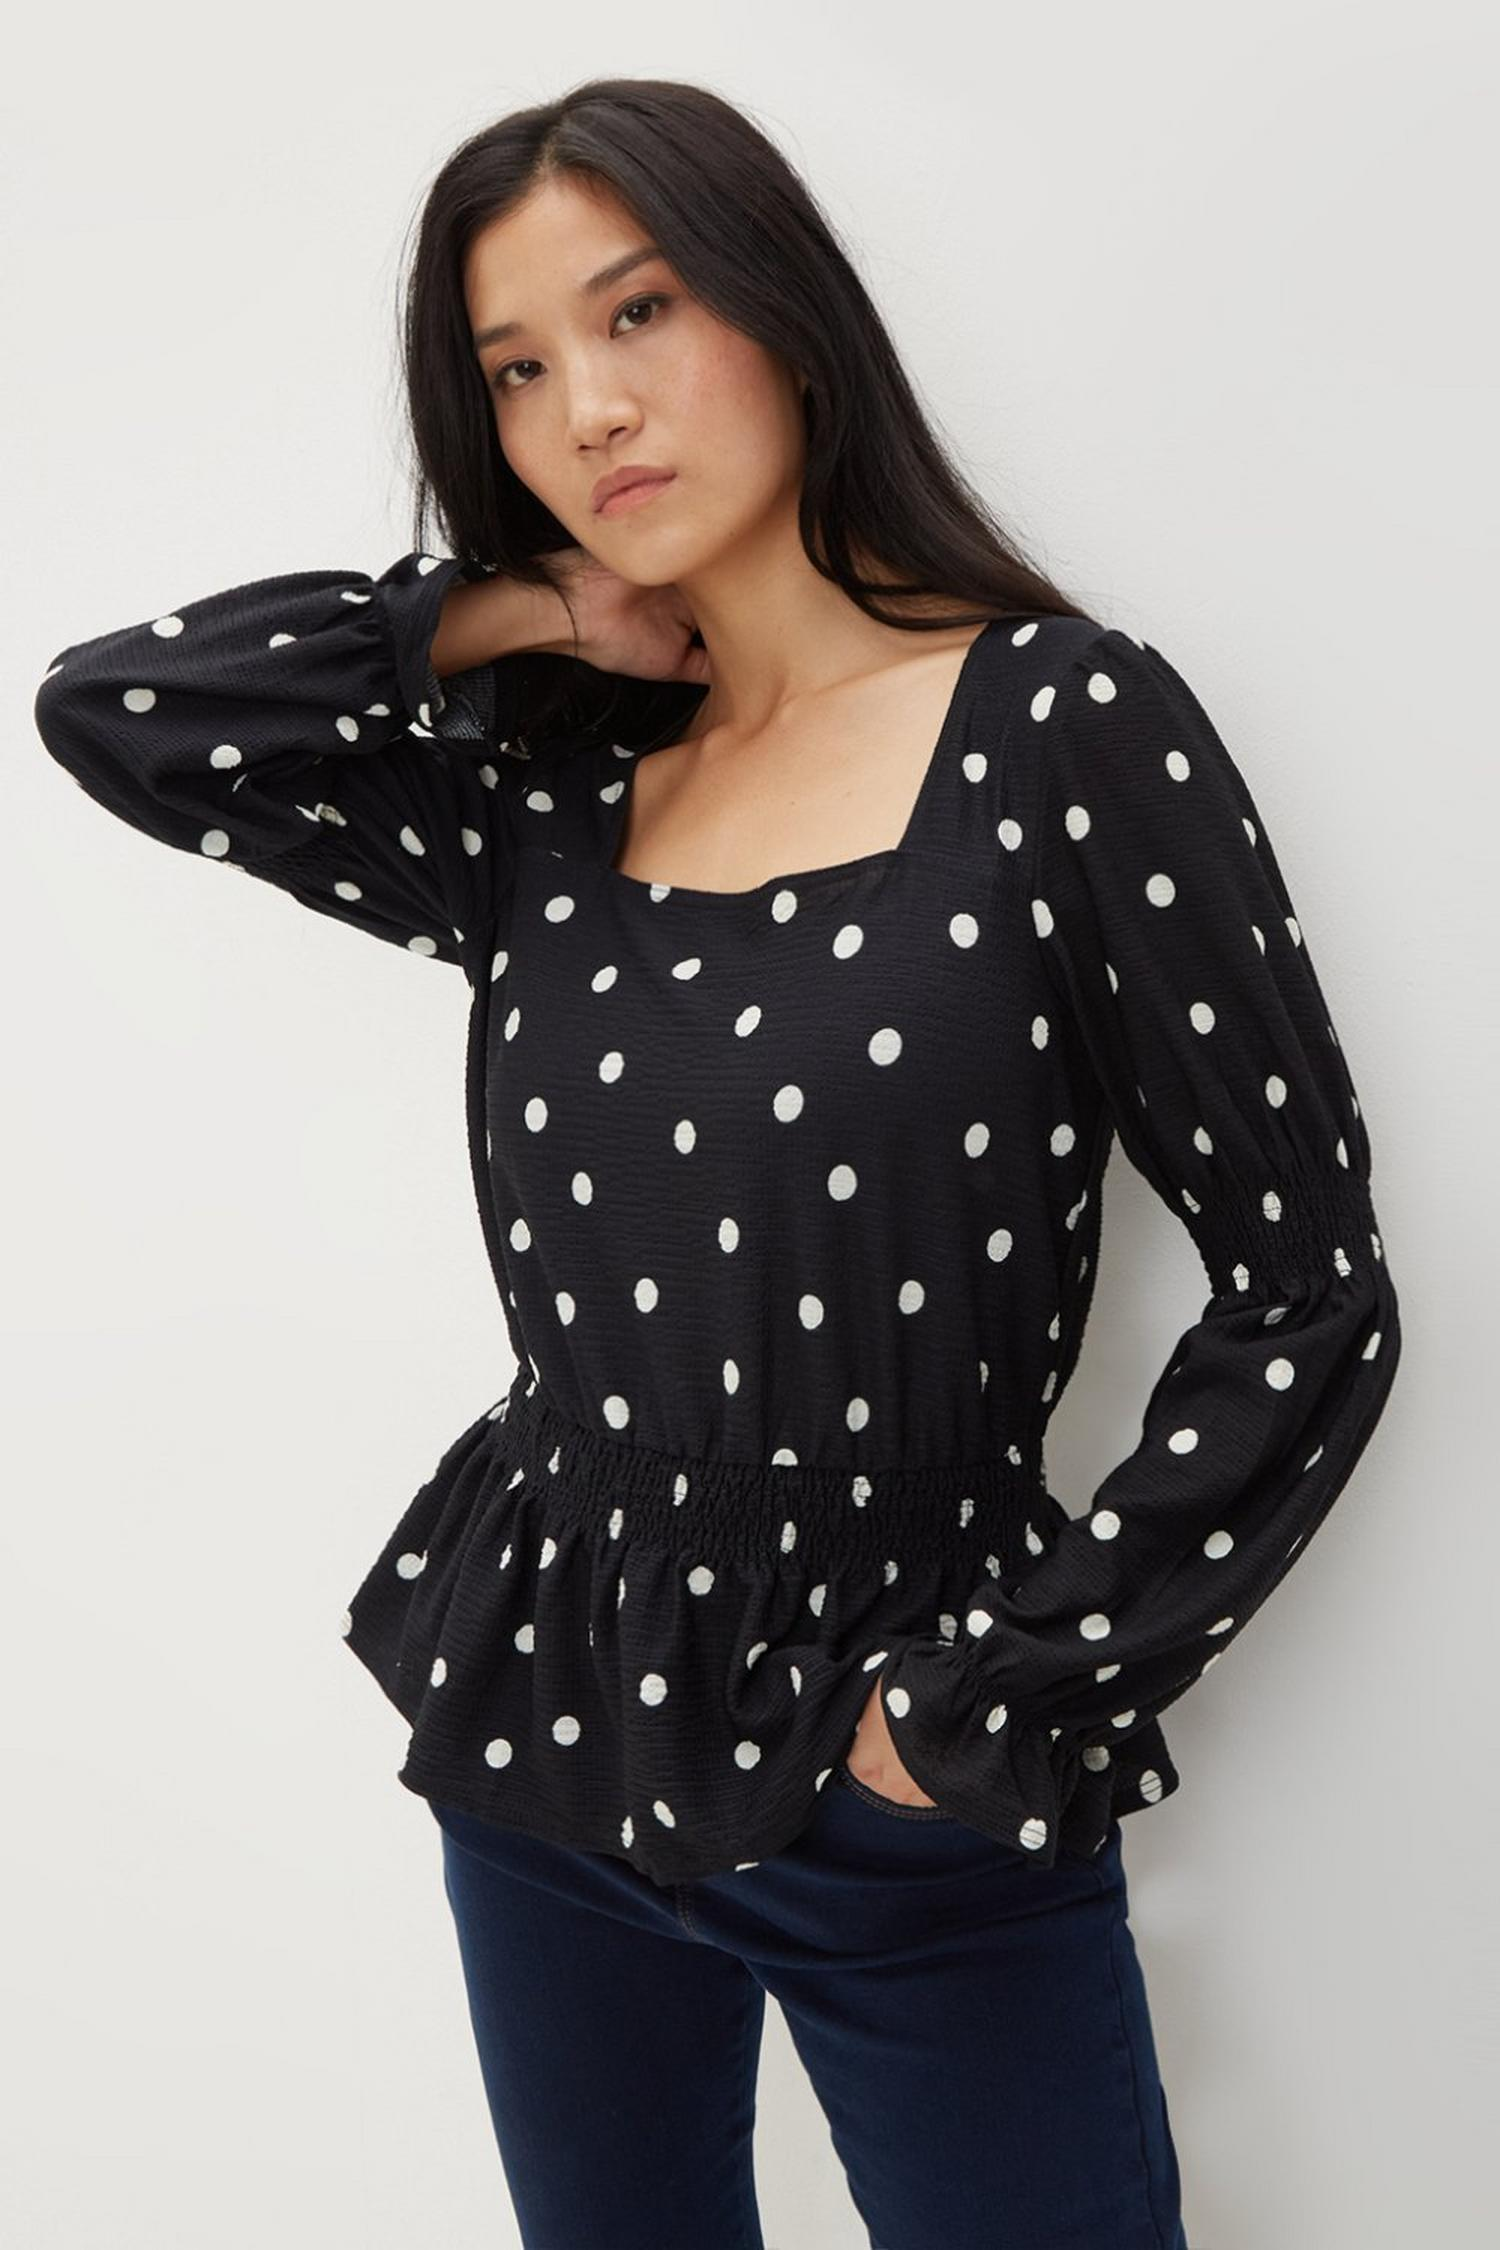 105 Black Spot Print Textured Top image number 1